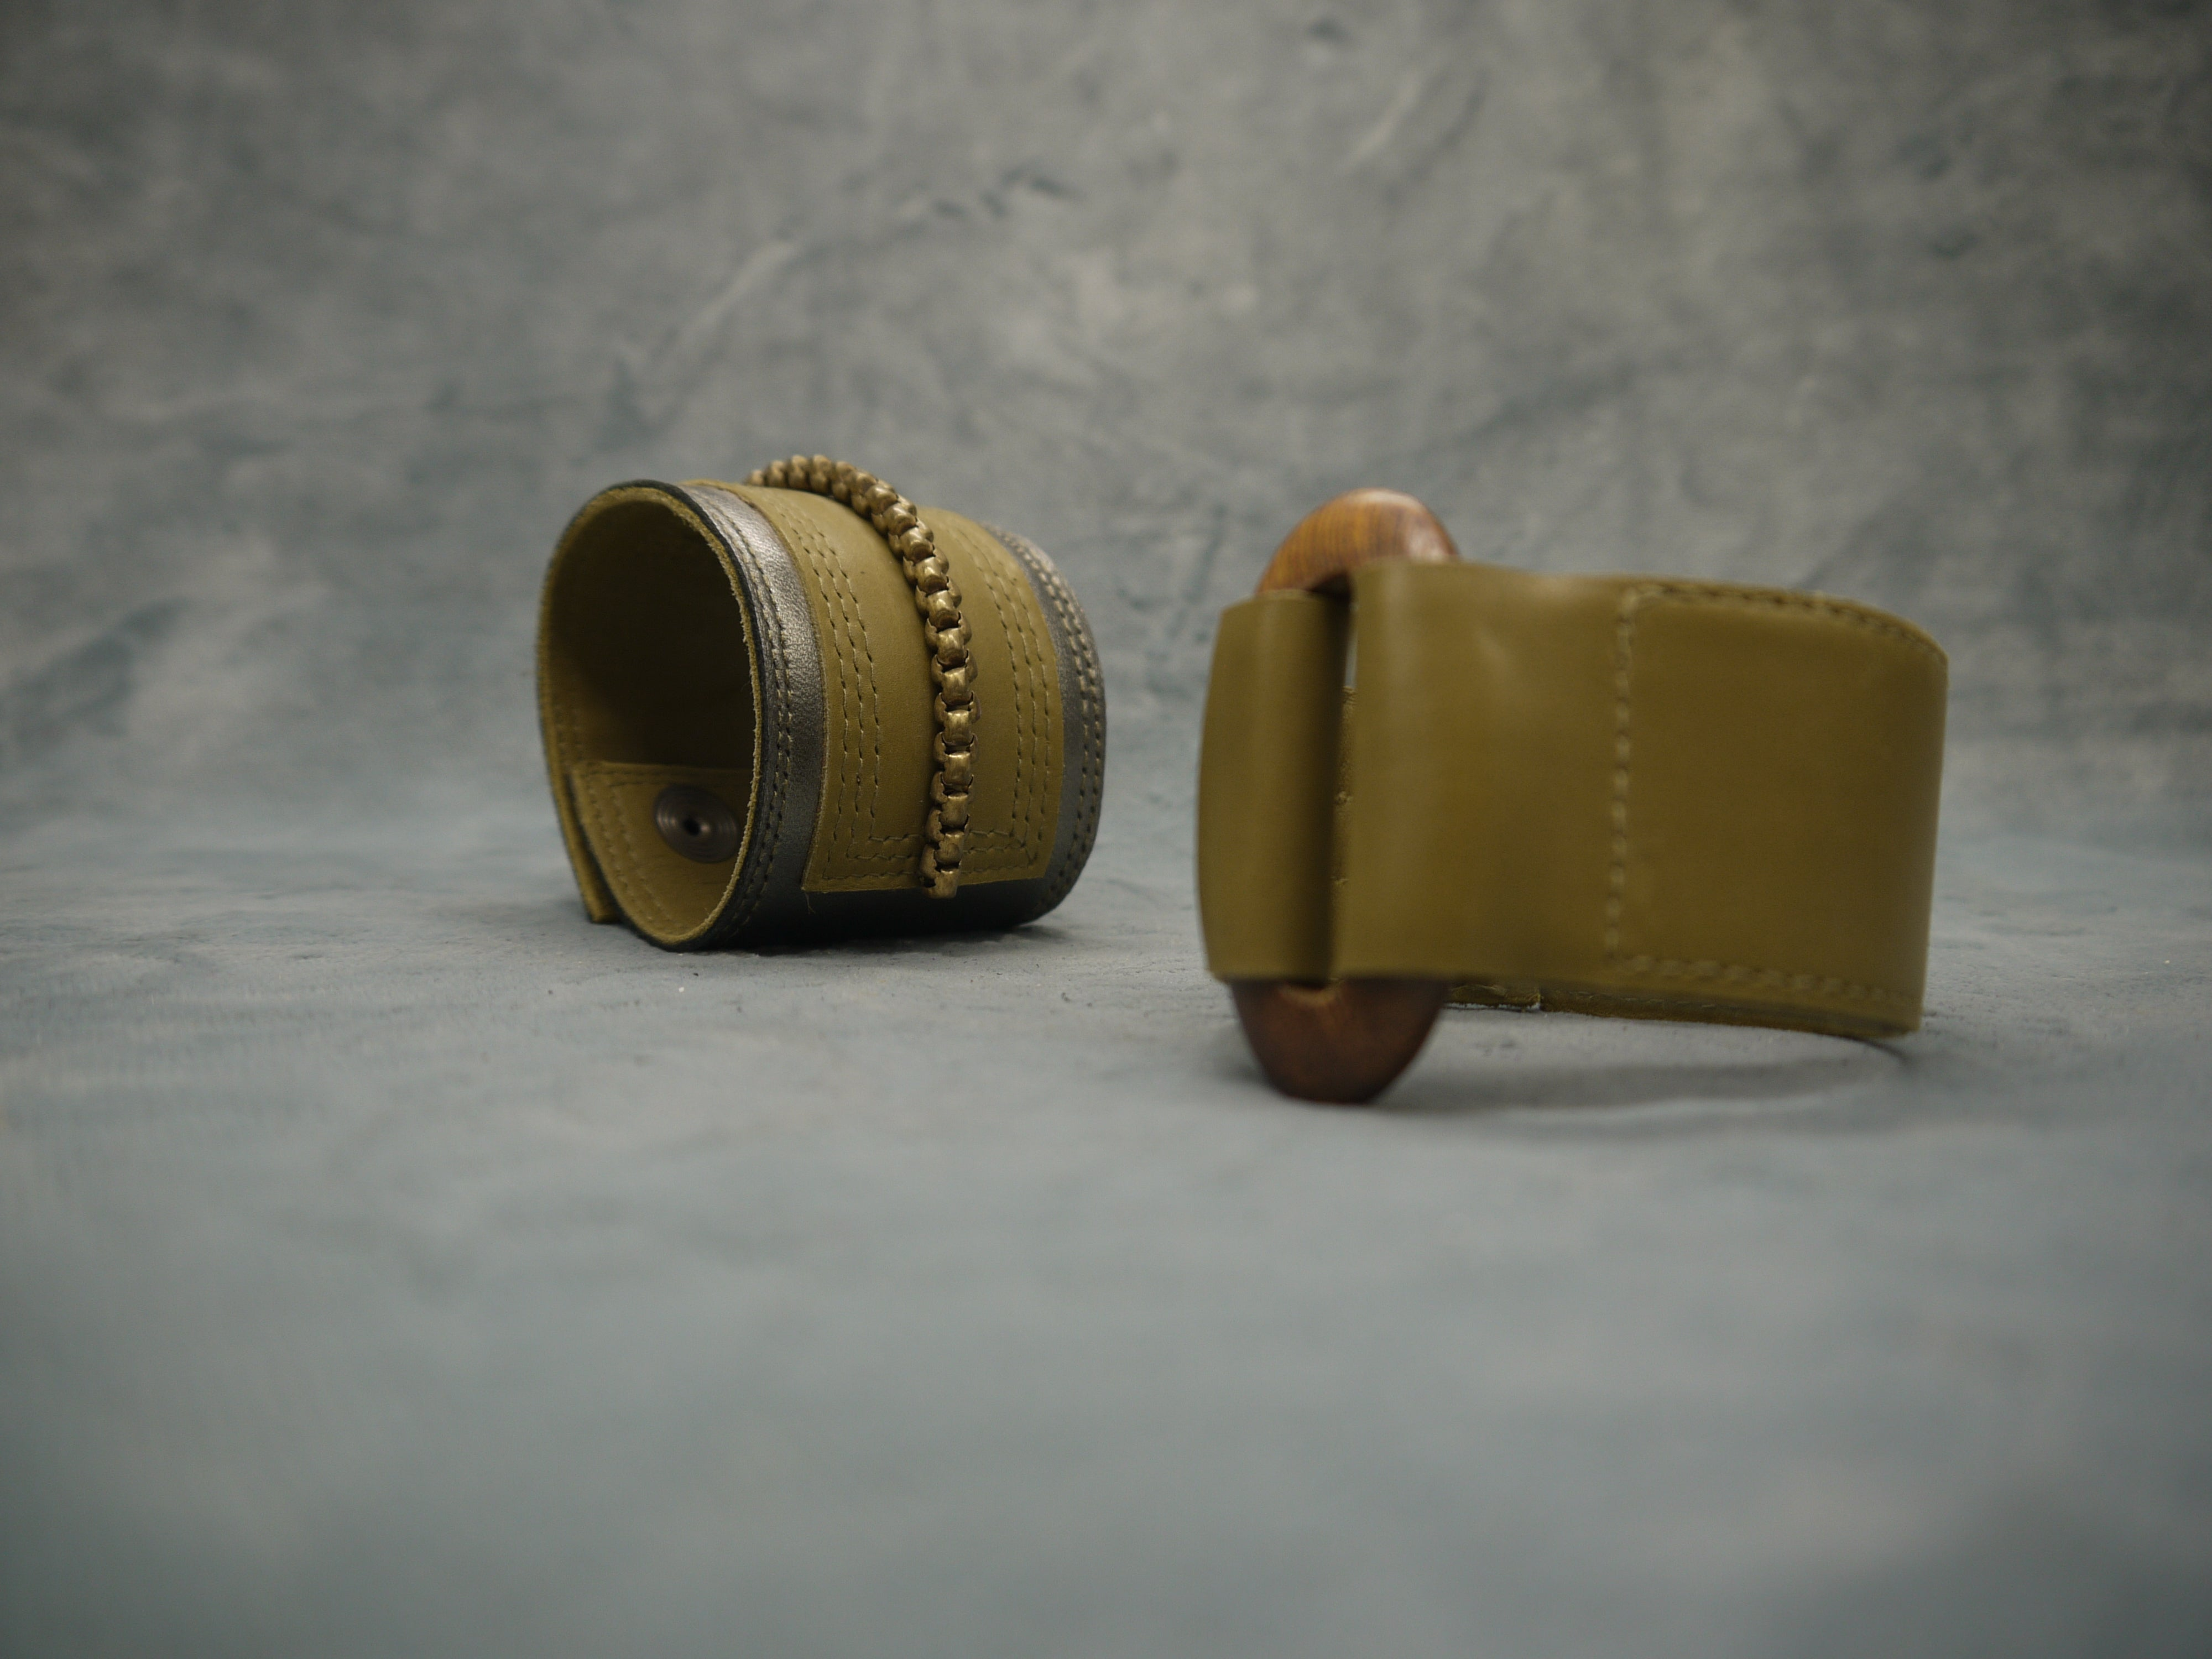 Leather cuff in soft Italian leather in olive green. Central oval element in wood units the two sections on the leather cuff. IN the background the Gunmetal/Olive grey cuff with brass central chain and repeat stitch detail is shown as complimentary accessory